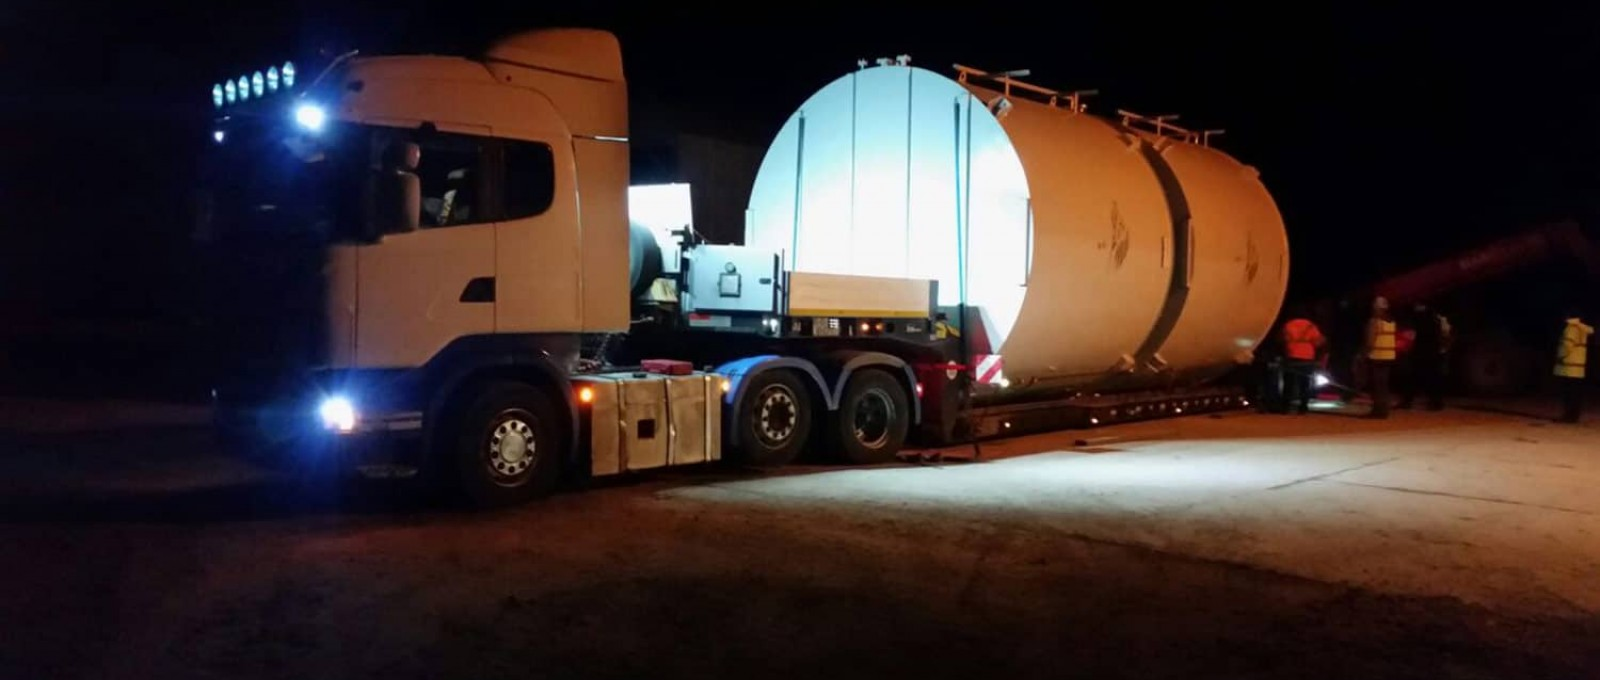 Heavy Haul Trucking Services based in Dublin, Ireland providing specialized cargo tranportation throughout the United Kingdom and Europe.